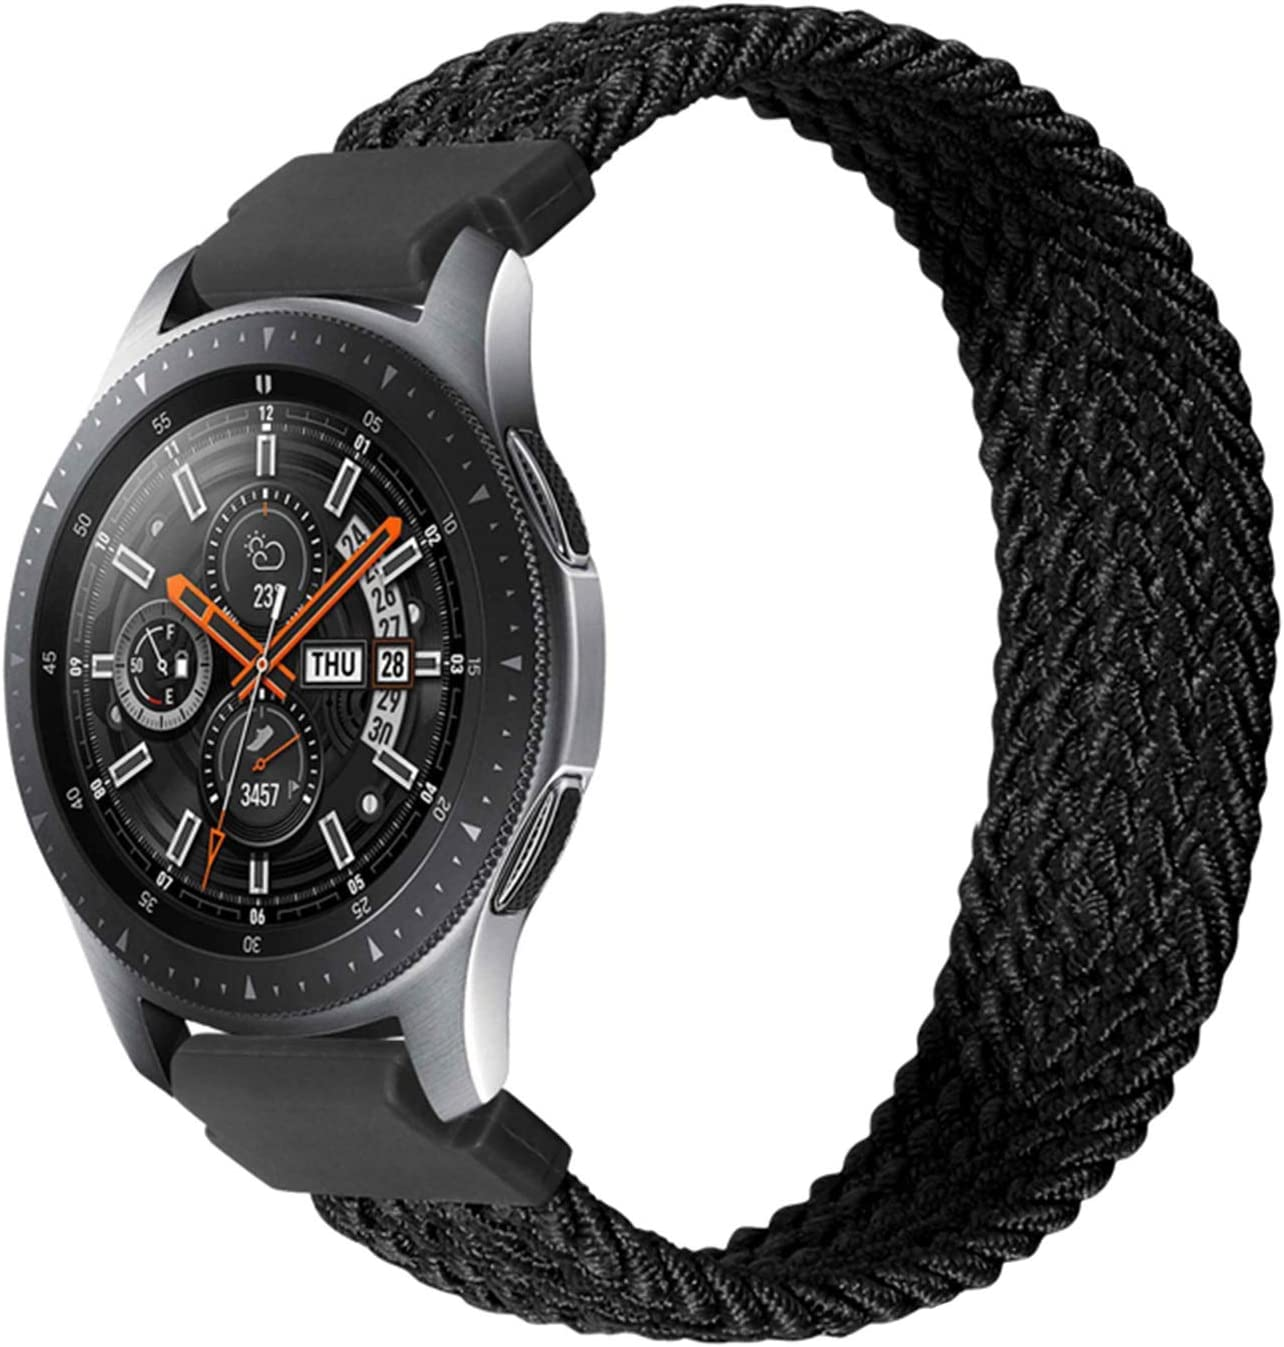 Special Campaign JJRRPA 40% OFF Cheap Sale 22mm 20mm Solo Loop Watch 3 Band for Strap Galaxy Samsung